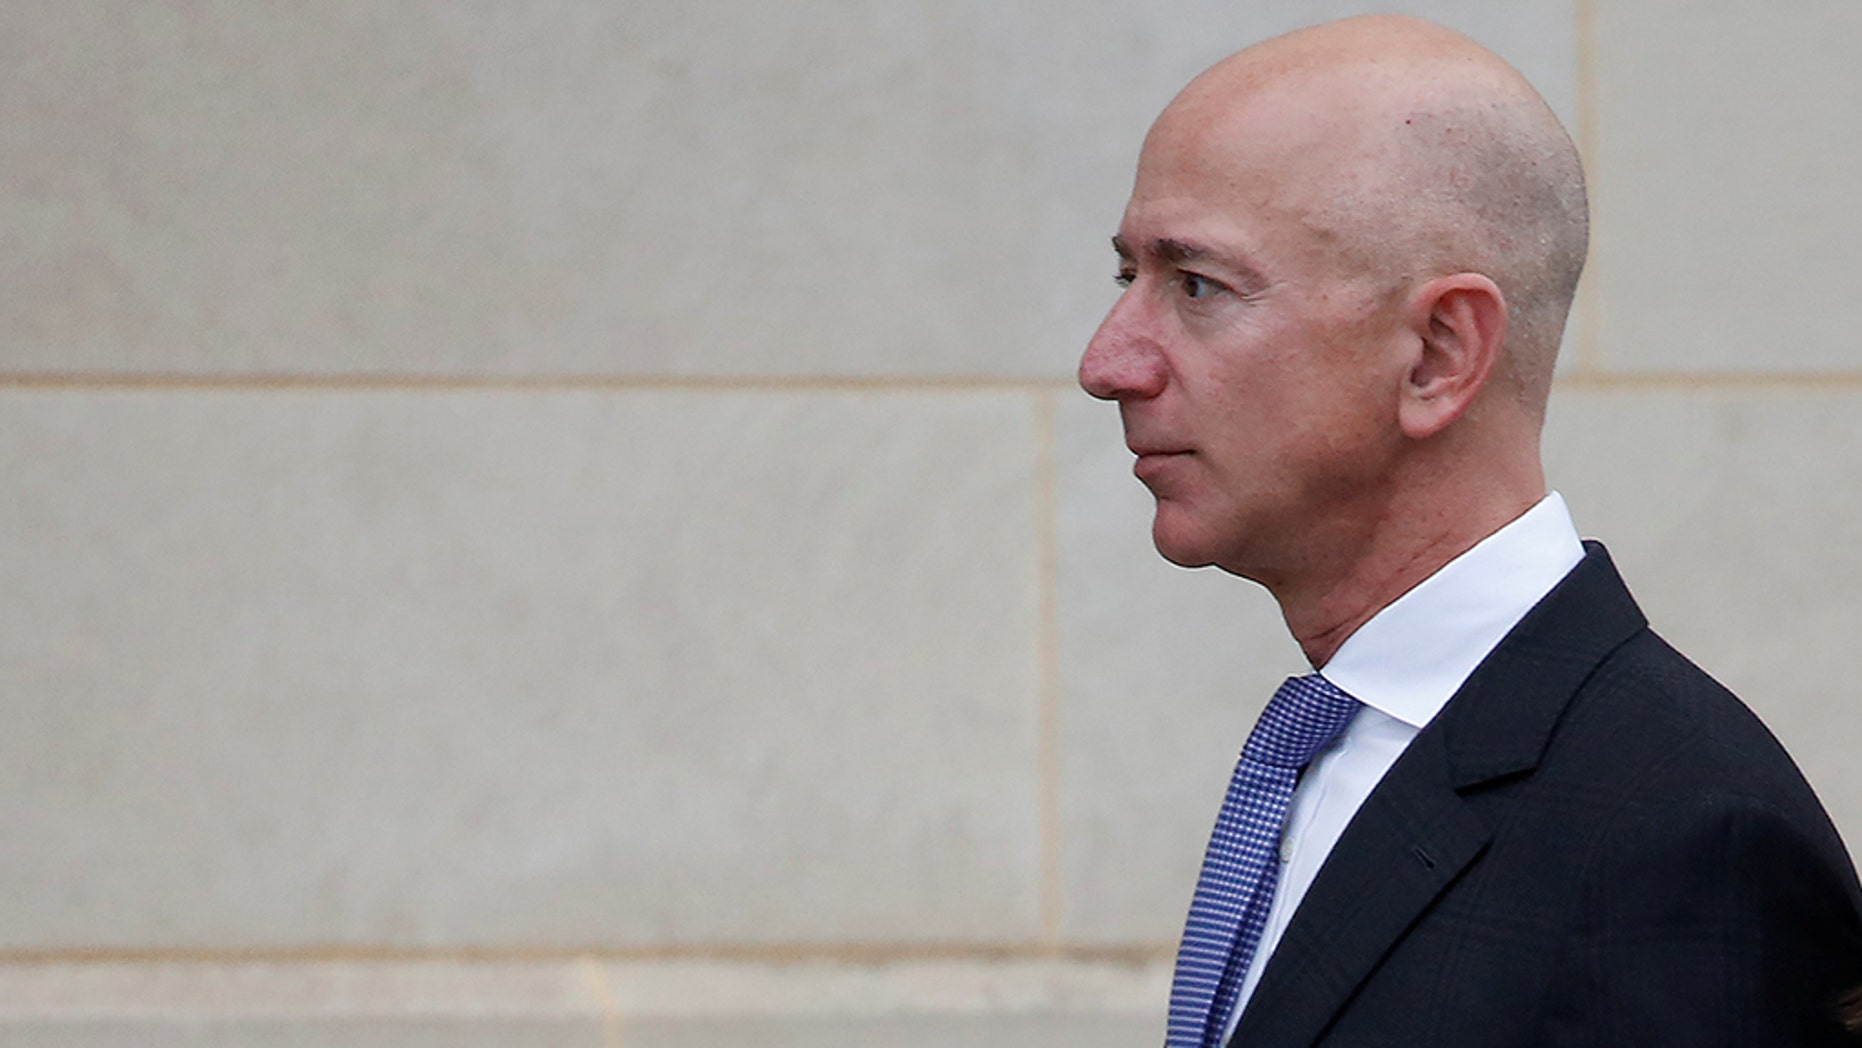 Amazon founder Jeff Bezos' private investigation into leaked text messages leads top security consultant to question mistress' brother, reports say. .REUTERS/Joshua Roberts